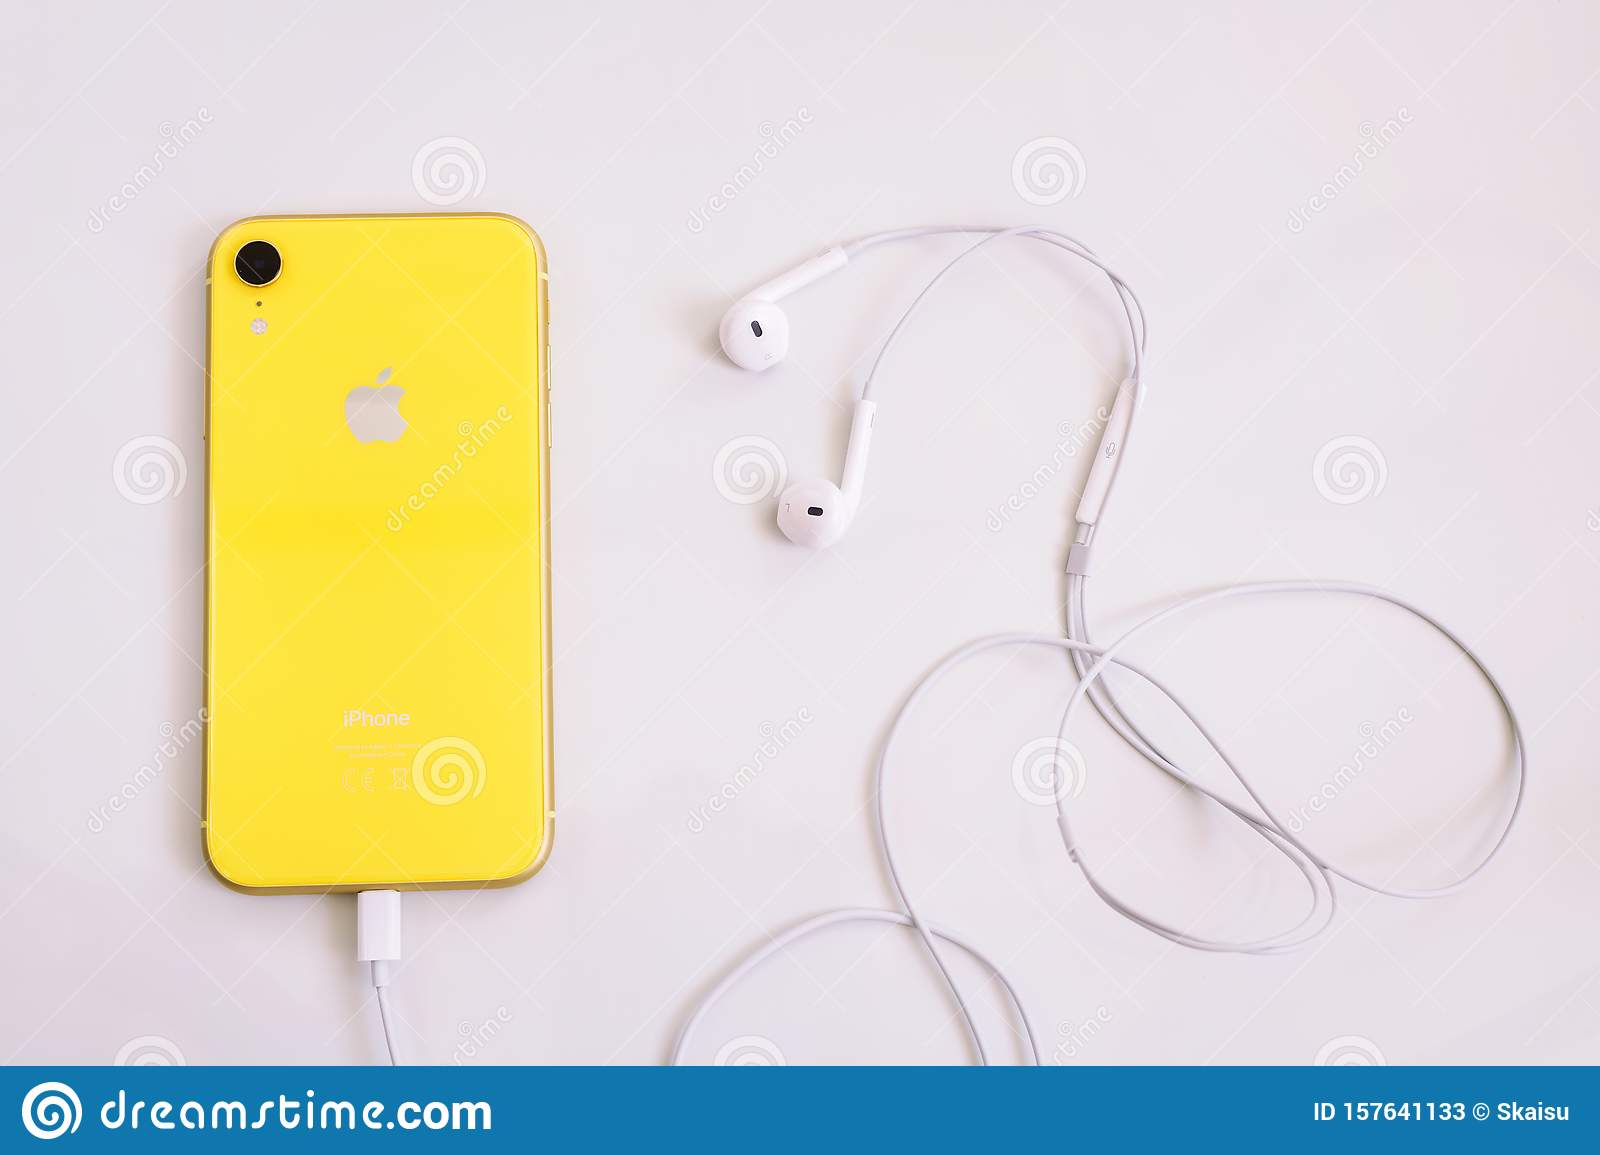 8 20 2019 Kyiv Ukraine Yellow Iphone Xr With Headphone Editorial Stock Photo Image Of Object Design 157641133